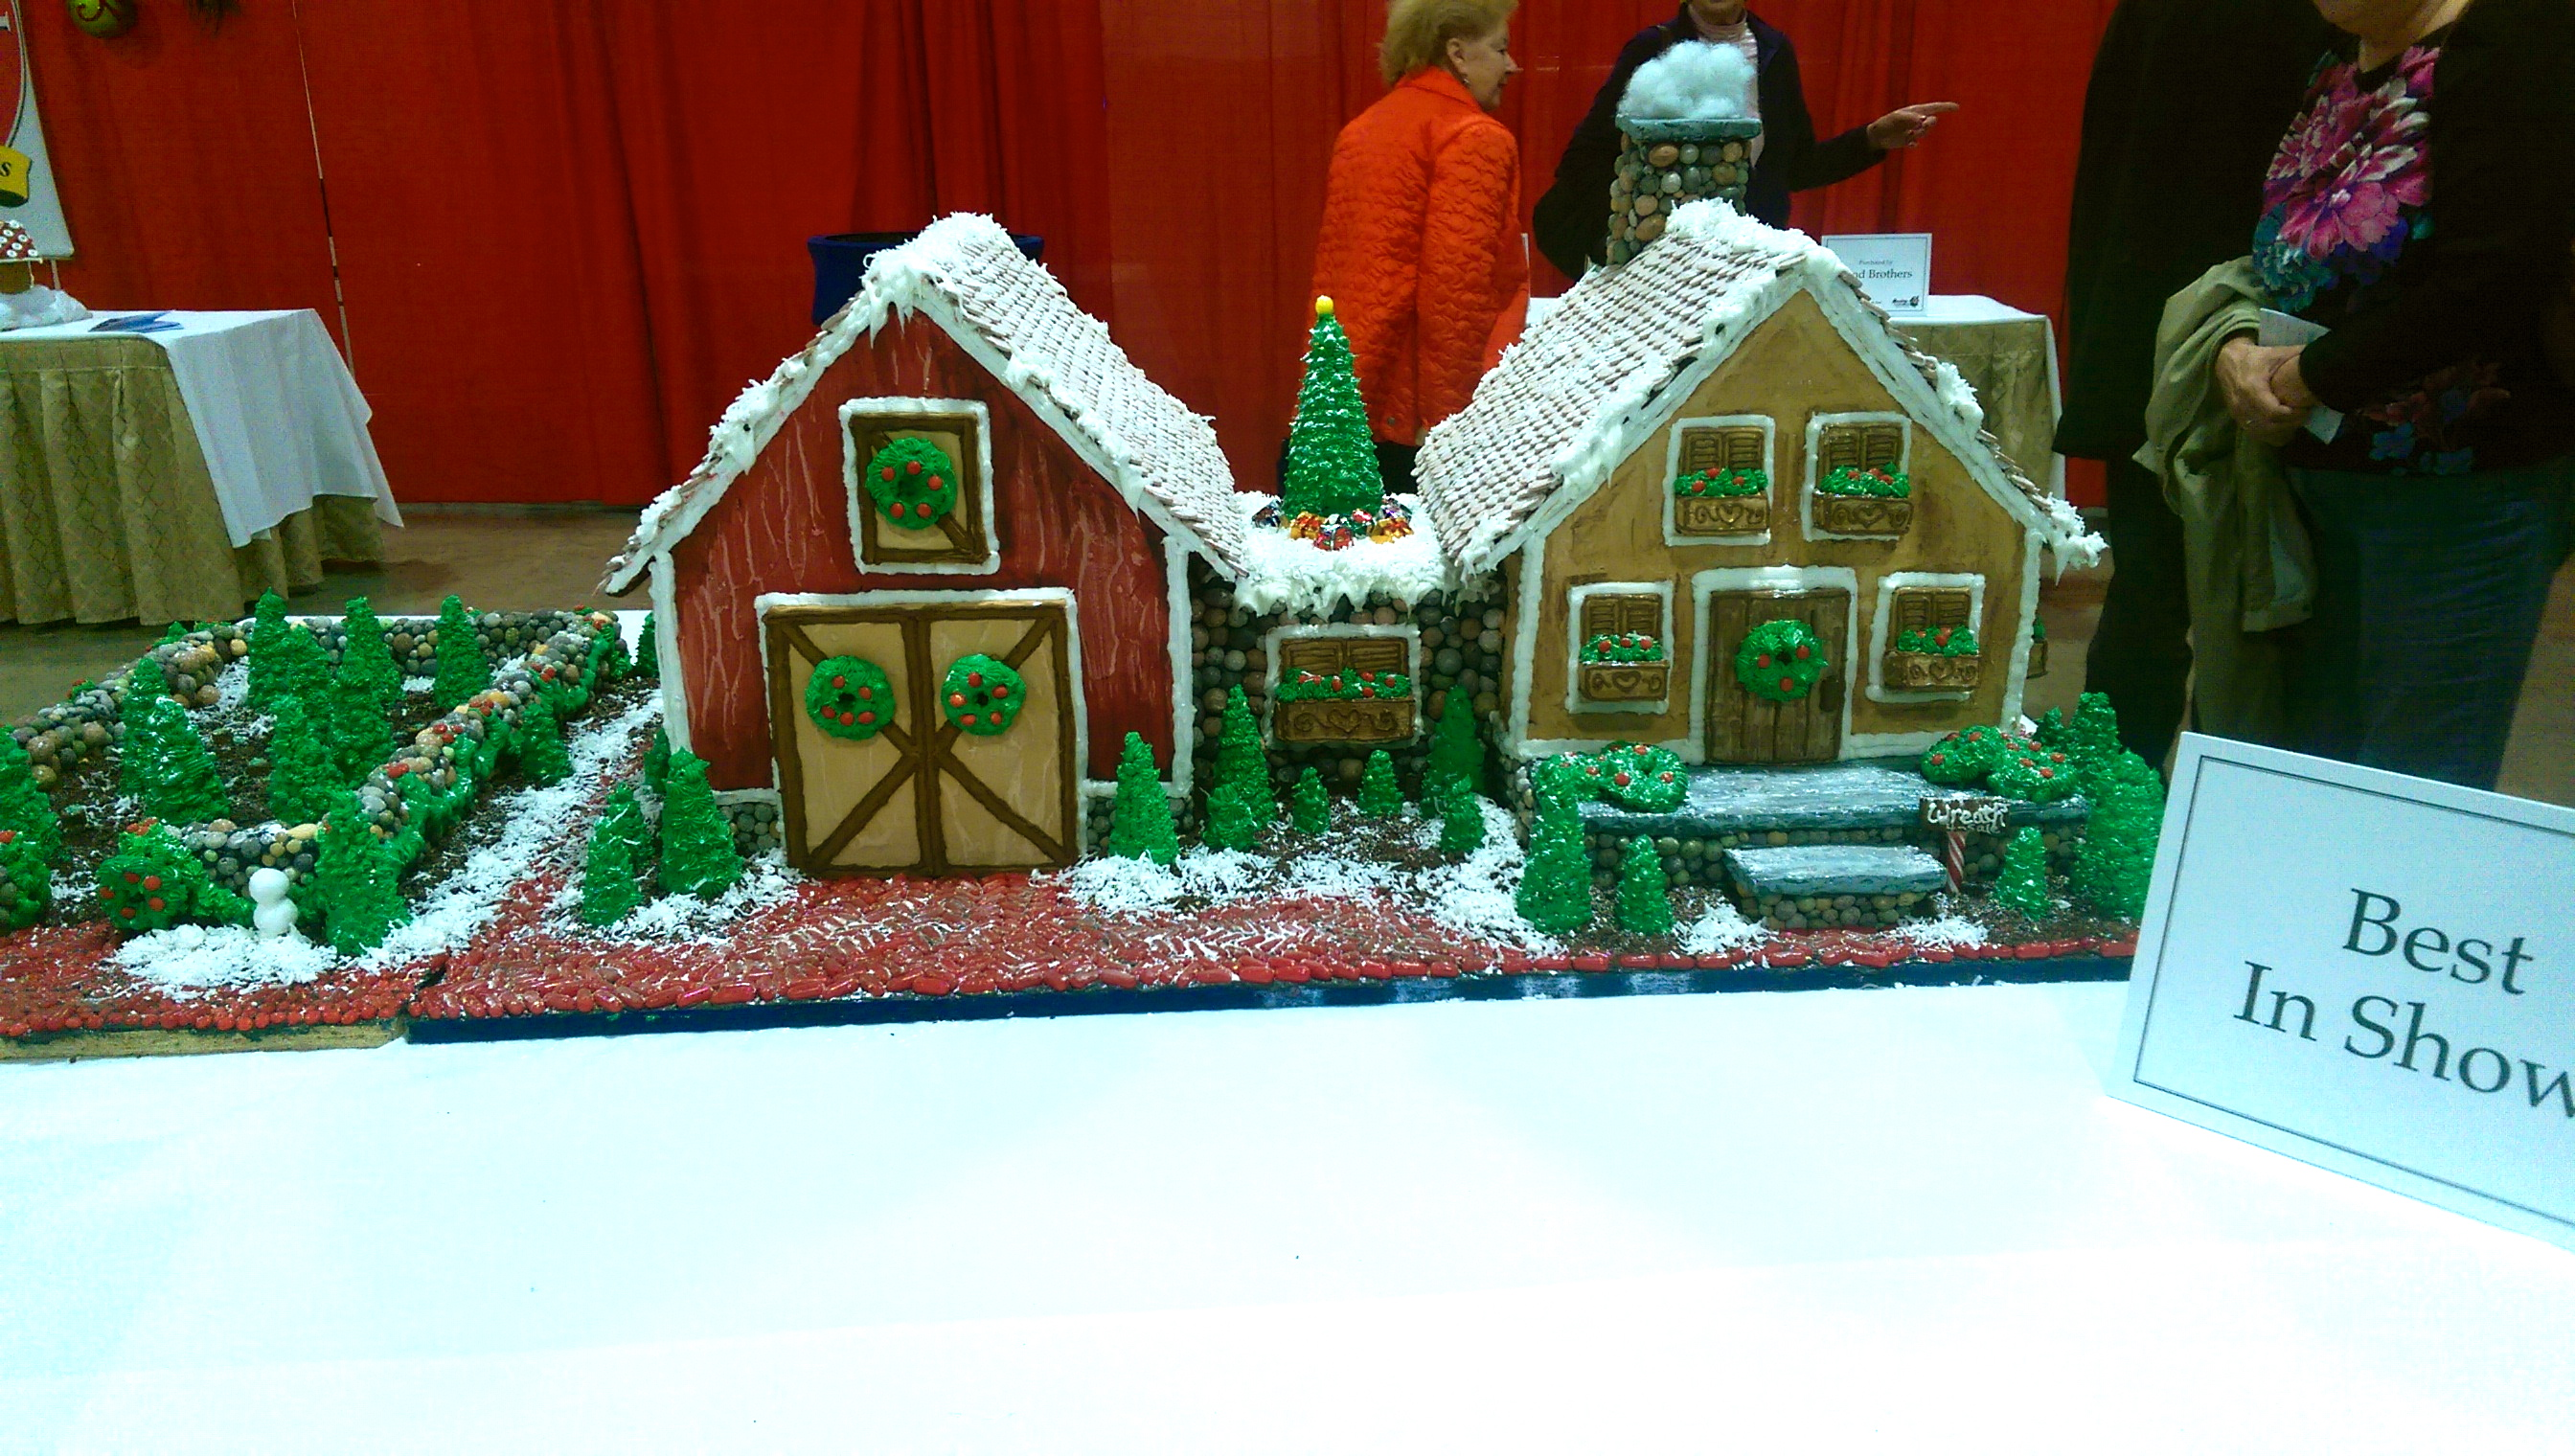 Boston Christmas Festival.Gingerbread House Contest Boston Christmas Festival A